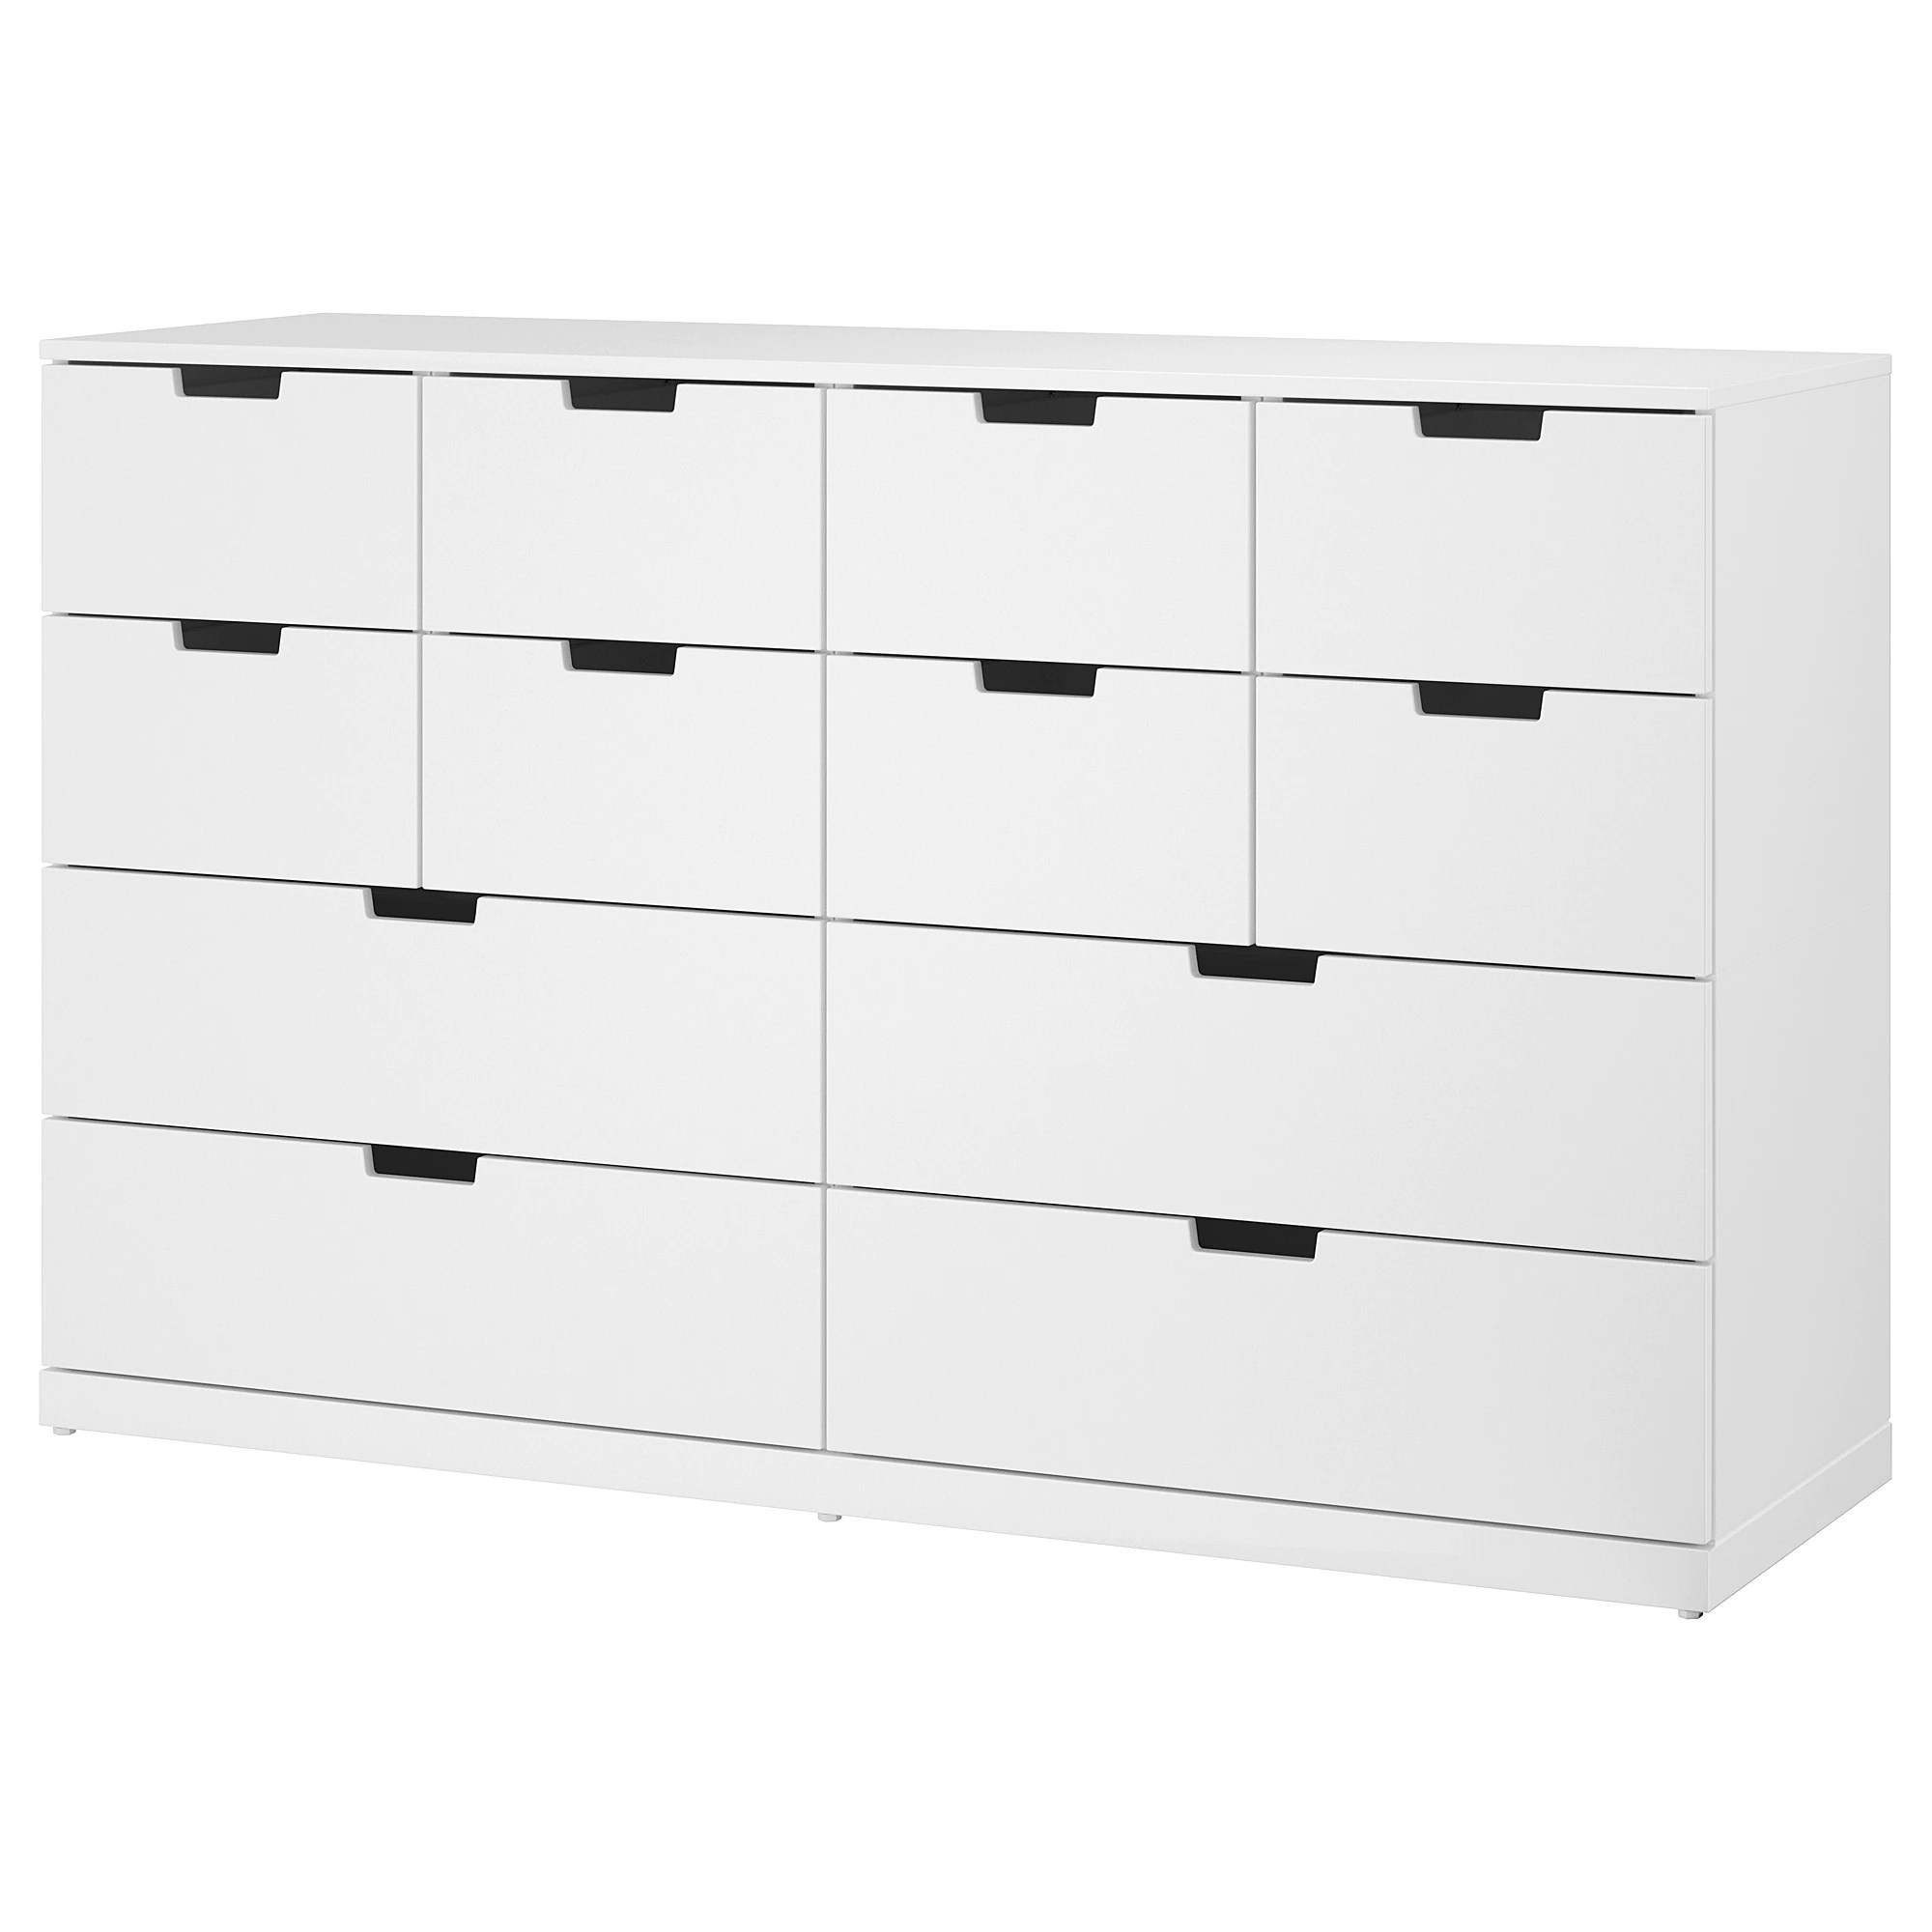 12 Drawer Chest Of Drawers Nordli 12 Drawer Chest White